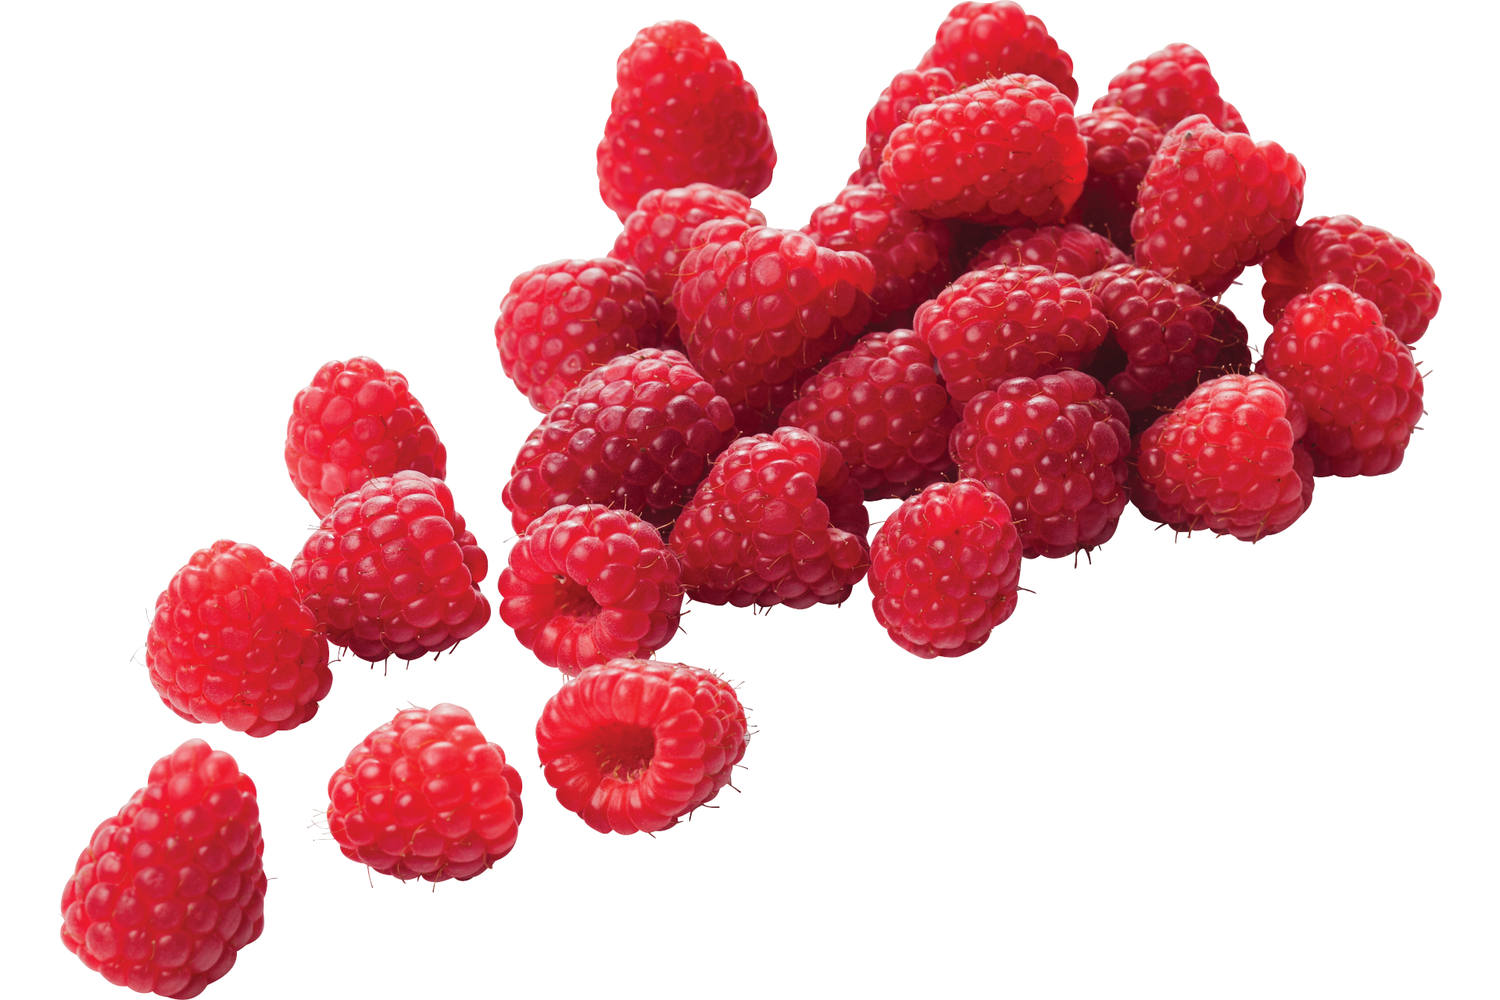 Raspberry 125 gr crade 12 pieces 1